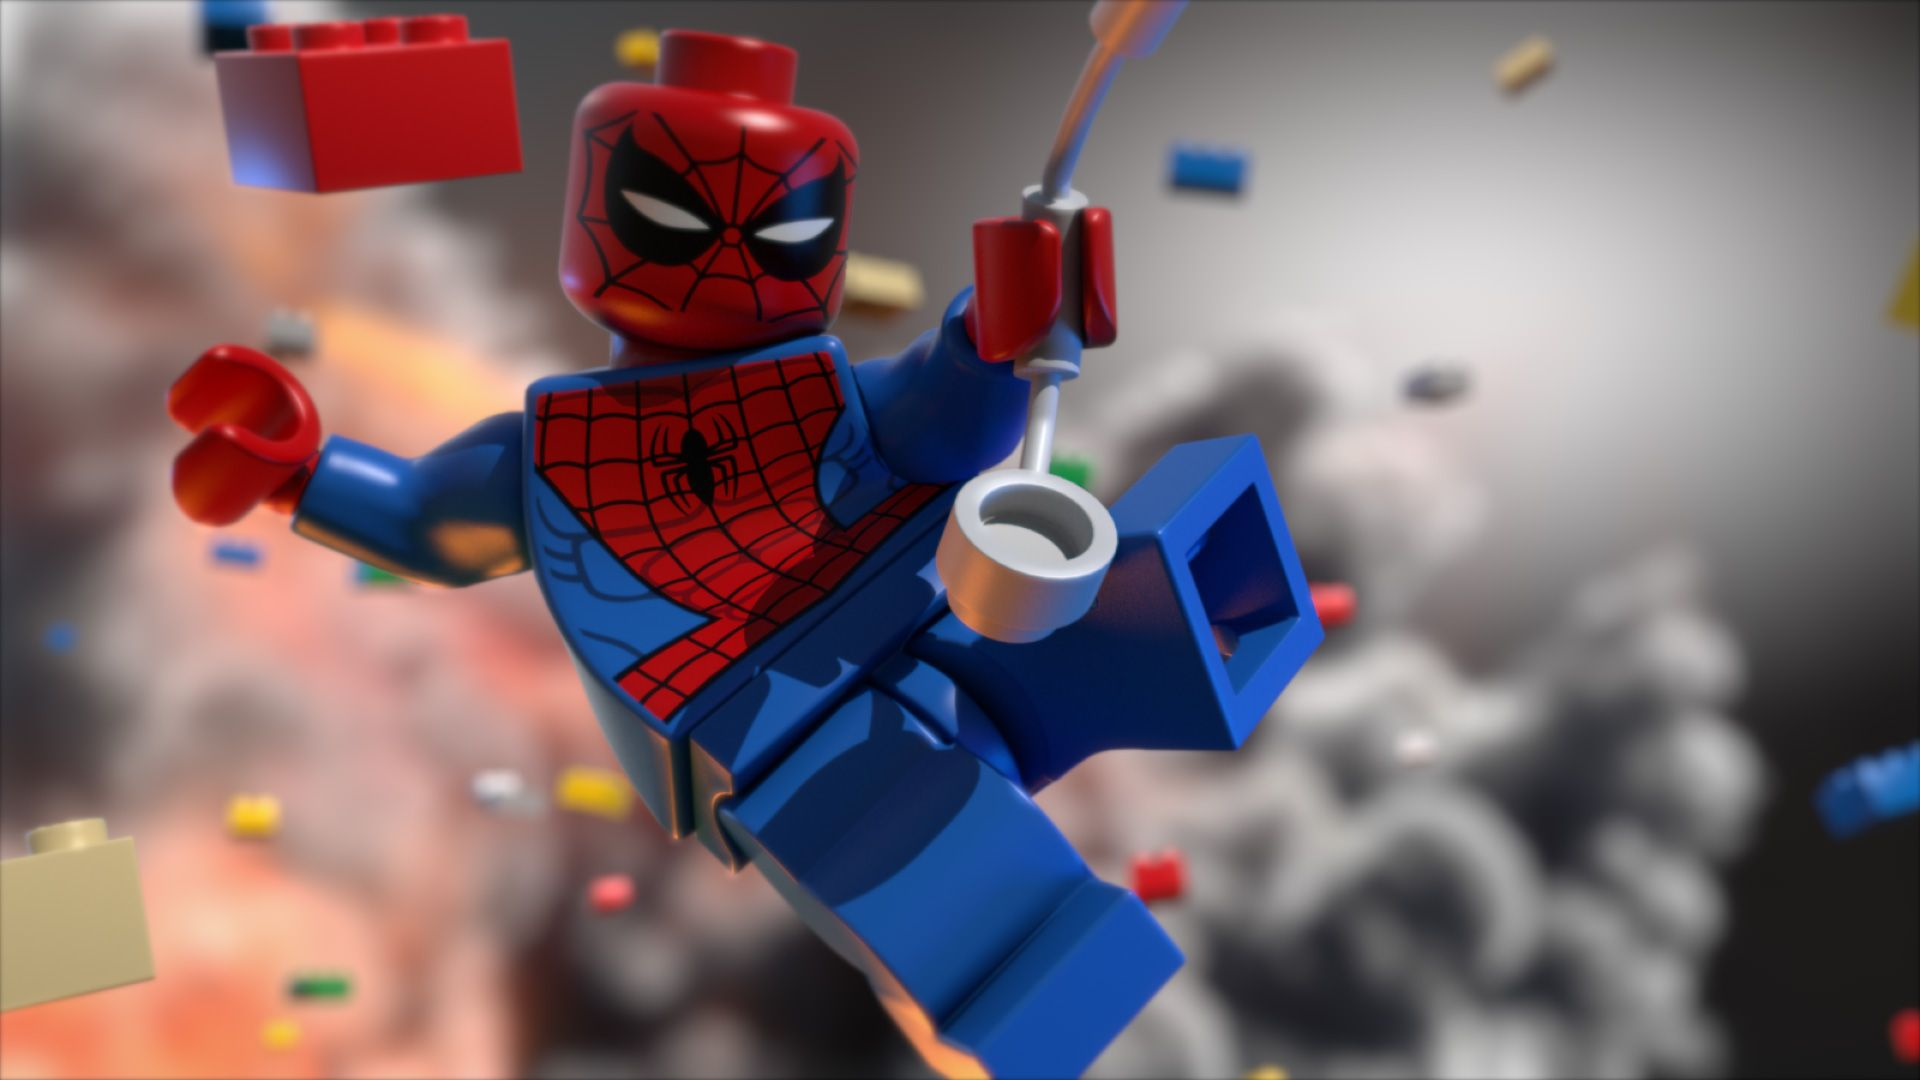 Lego spiderman wallpaper wallpaper and background boys party lego spiderman wallpaper wallpaper and background voltagebd Image collections